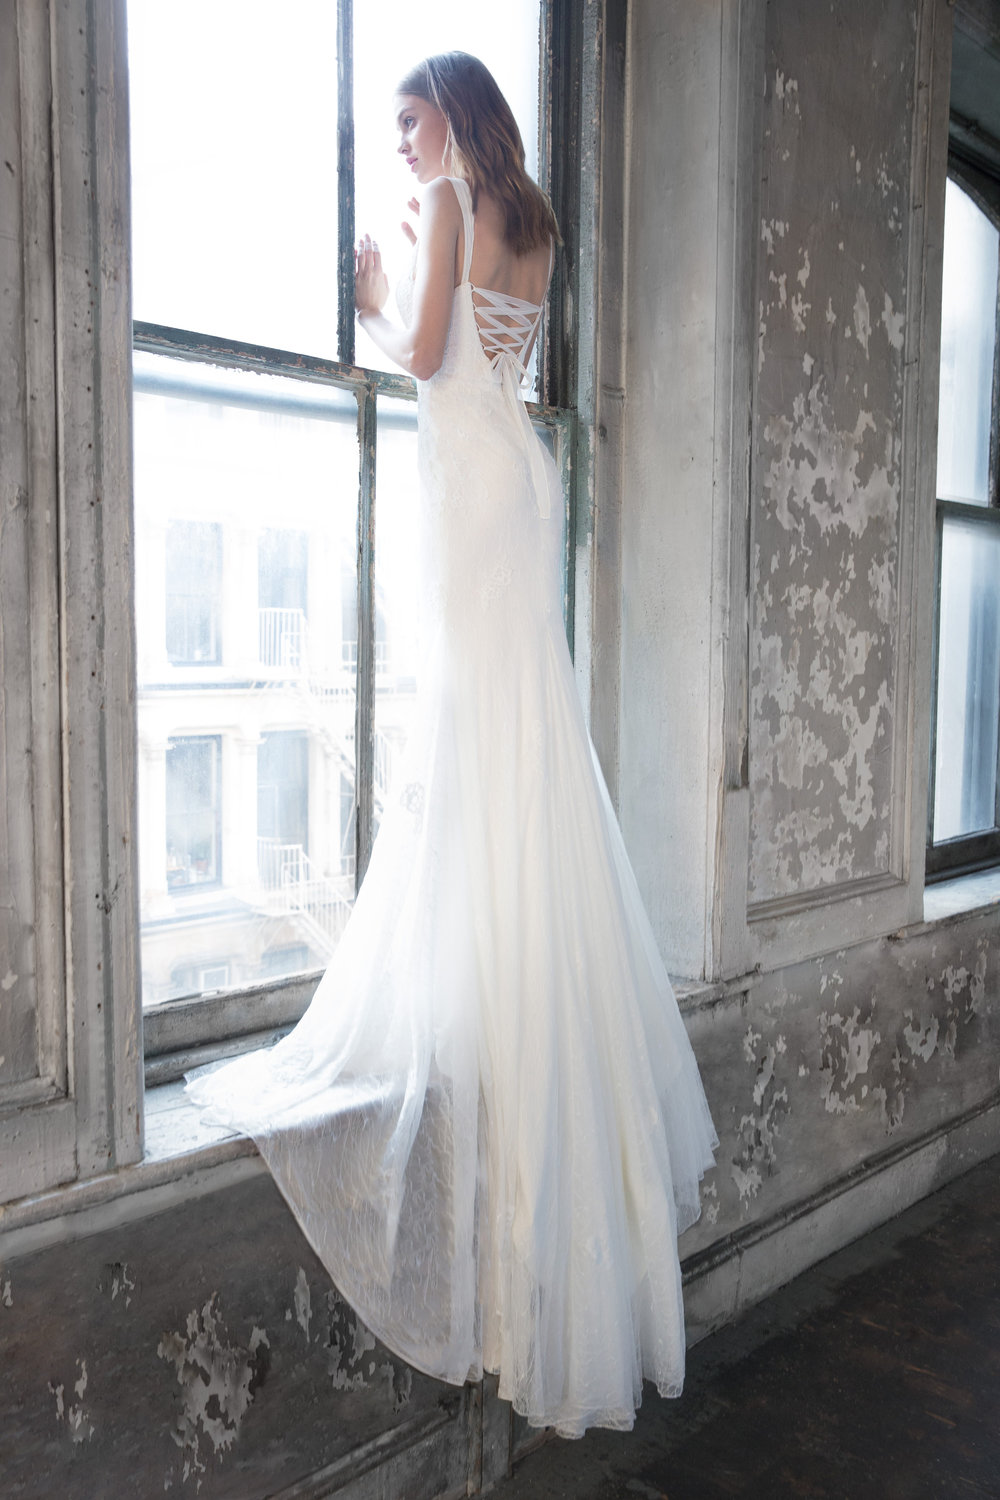 The Collection has a brand new designer and we are so excited to see the new designers take on the brand - we think all you romantic brides will love it!